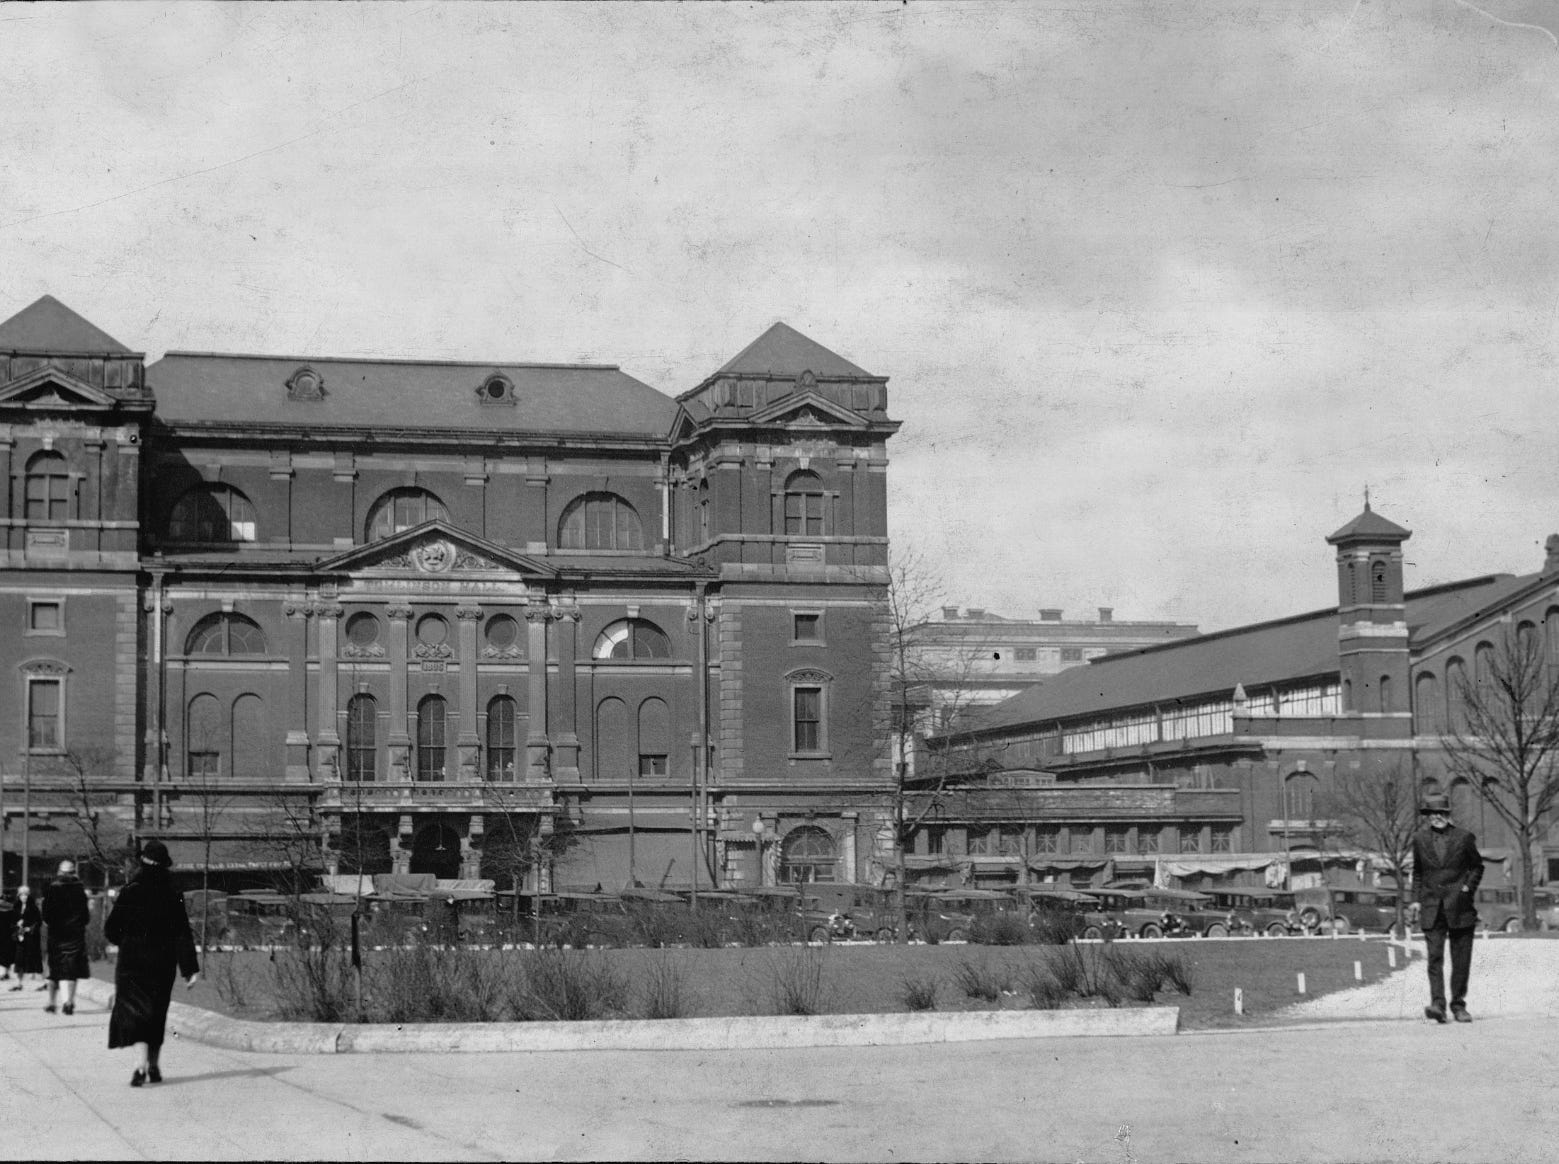 Indianapolis' Tomlinson Hall (left) had served the city as a public meeting hall for over 40 years when this picture was taken in the late 1920s. The view, looking north across the lawn of the old Marion County Courthouse, also shows the City Market at right. On the night of Jan. 30, 1958 the structure caught fire, illuminating the downtown area as flames climbed hundreds of feet into the air. The historic hall was razed six months later. A single doorway arch facing east is all that stands today in the market's courtyard (visible here in the lower right hand corner of the hall, where it attached to the City Market). Photo by unidentified Indianapolis News photographer, circa 1929